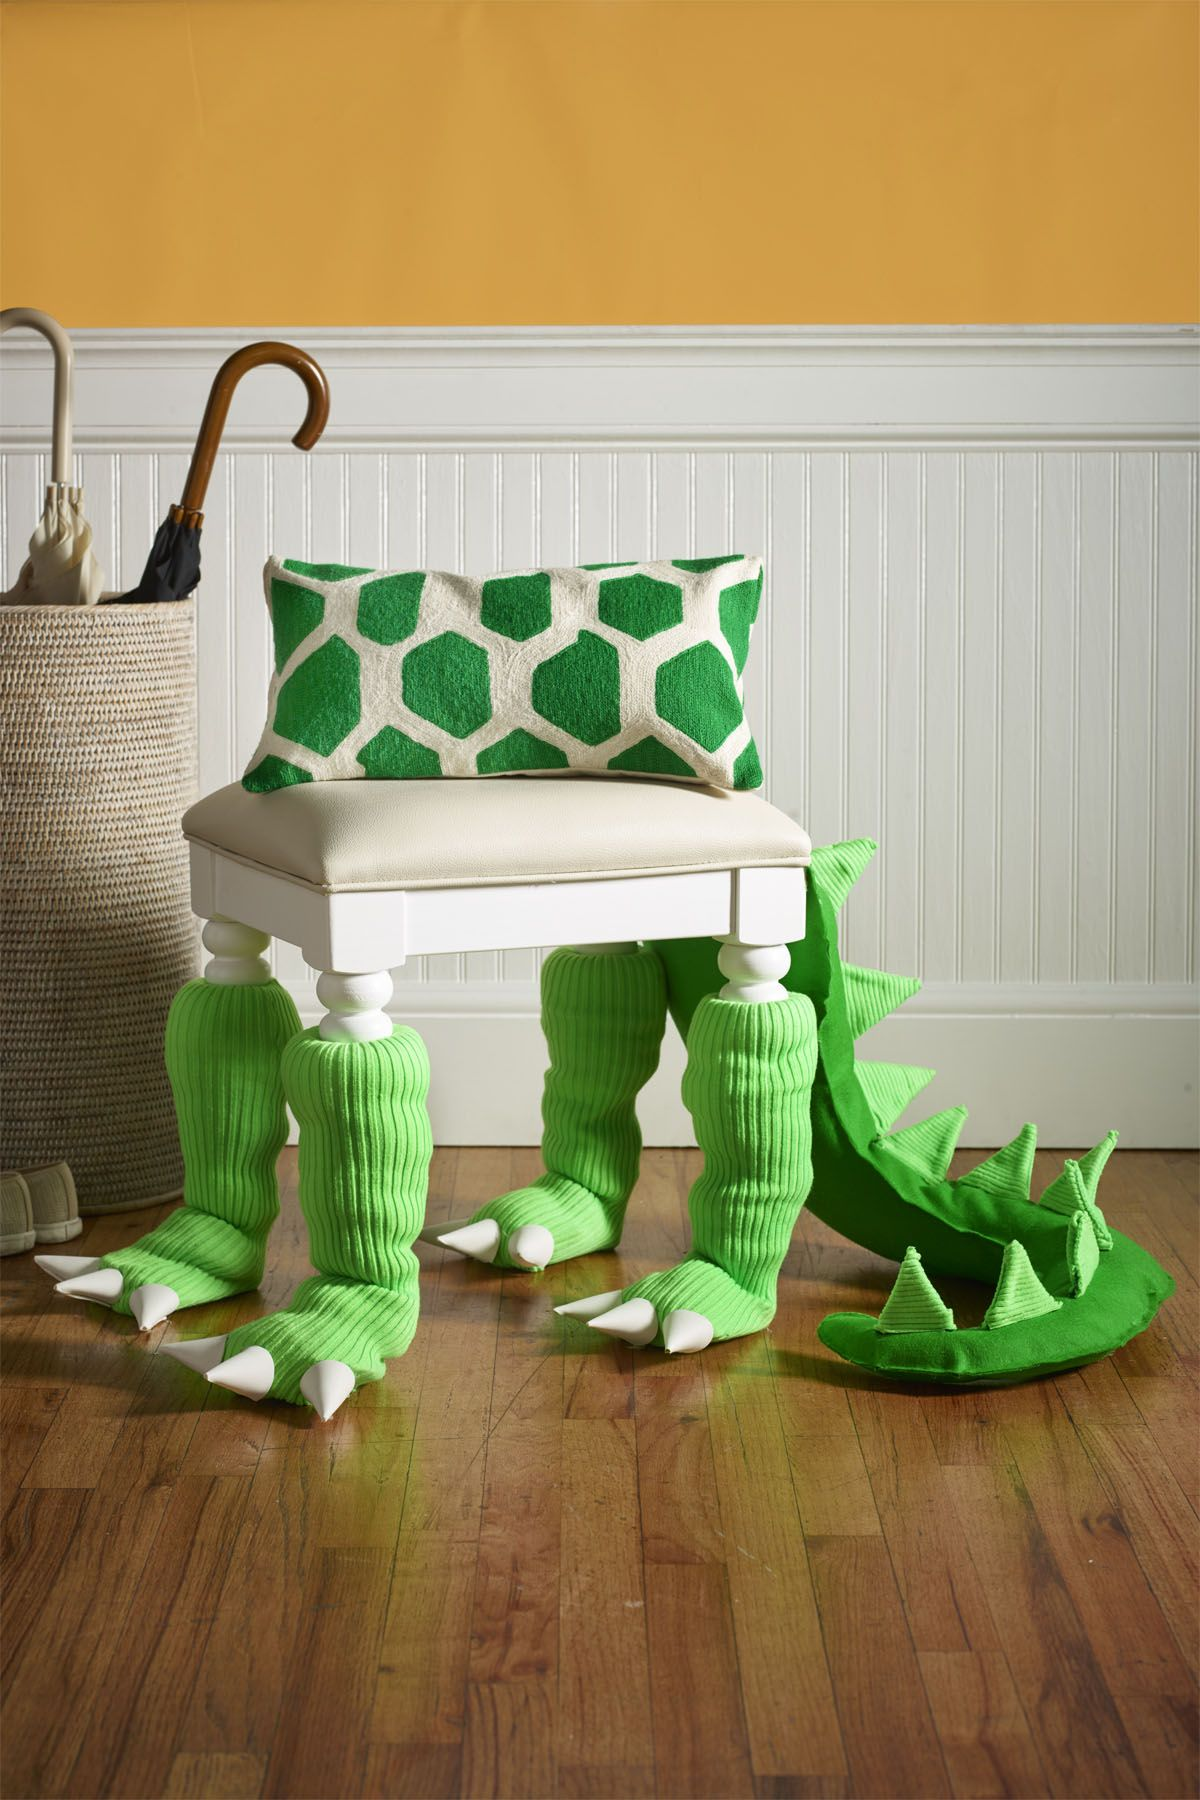 Phenomenal 54 Easy Halloween Decorations Spooky Home Decor Ideas For Onthecornerstone Fun Painted Chair Ideas Images Onthecornerstoneorg